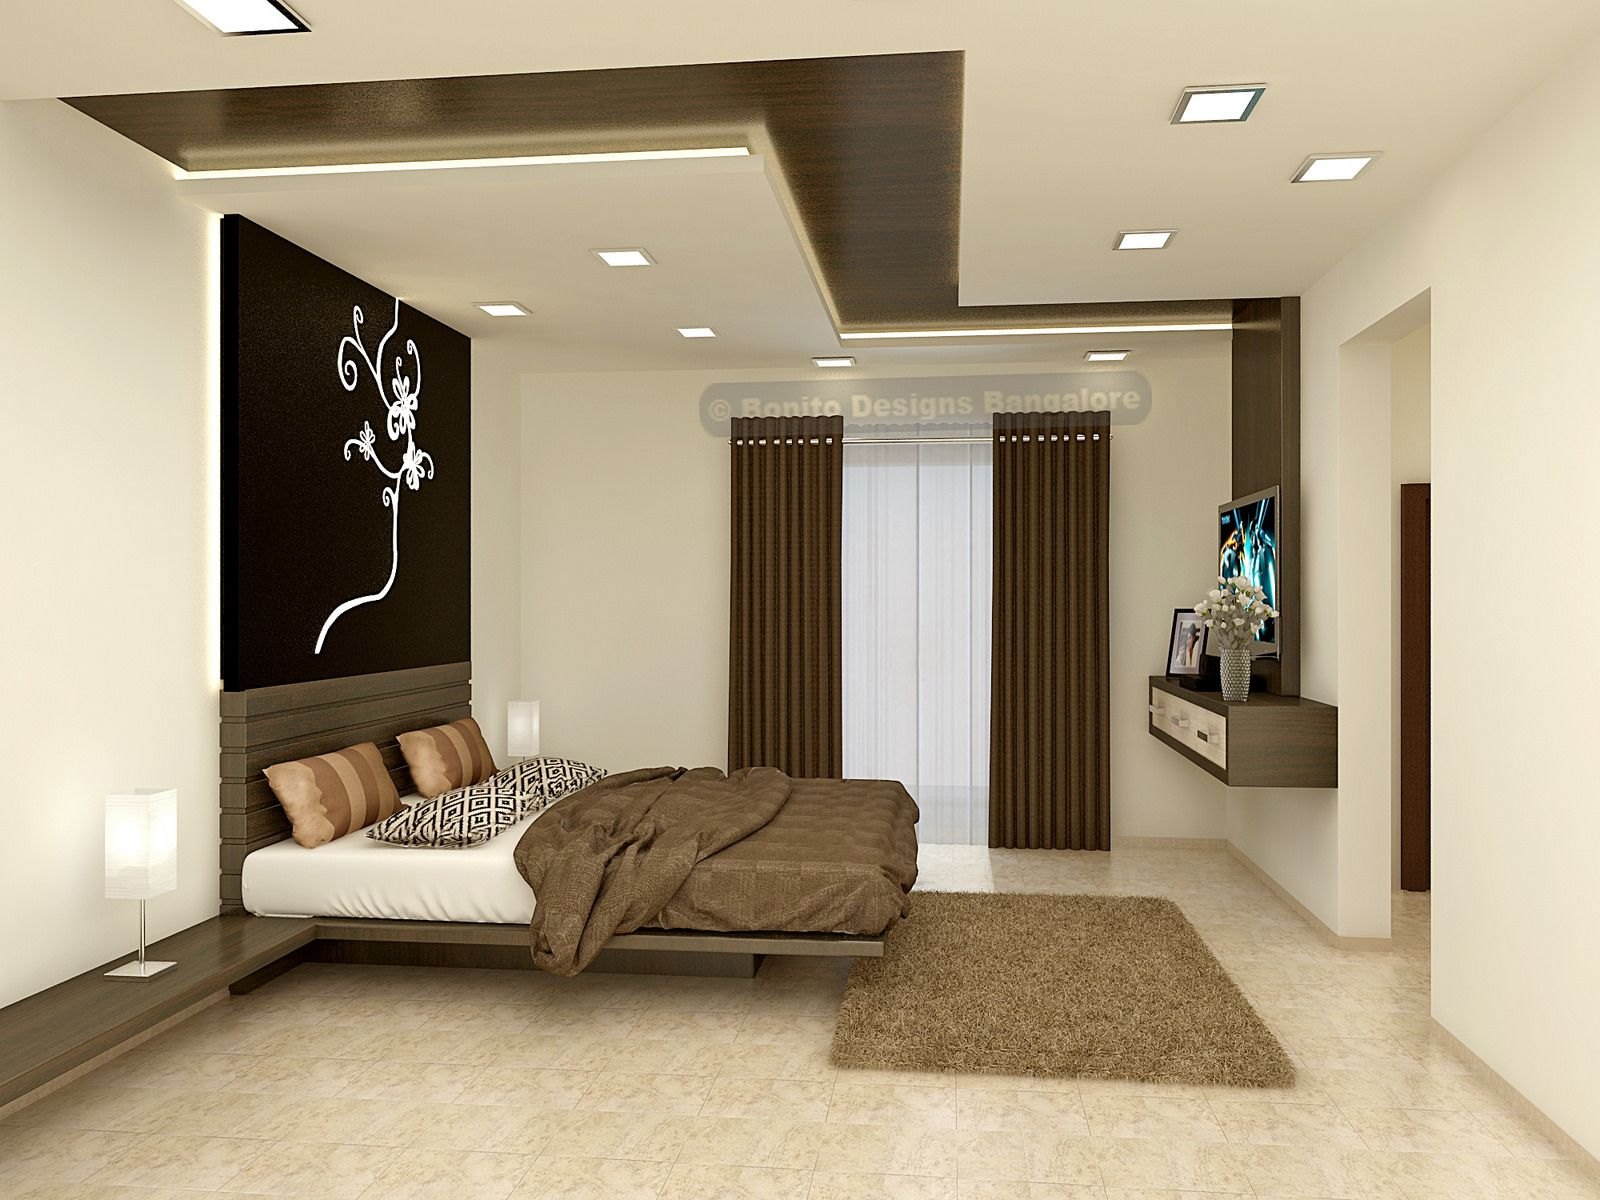 Best Sandepmbr 1 Bedroom False Ceiling Design Ceiling Design 400 x 300